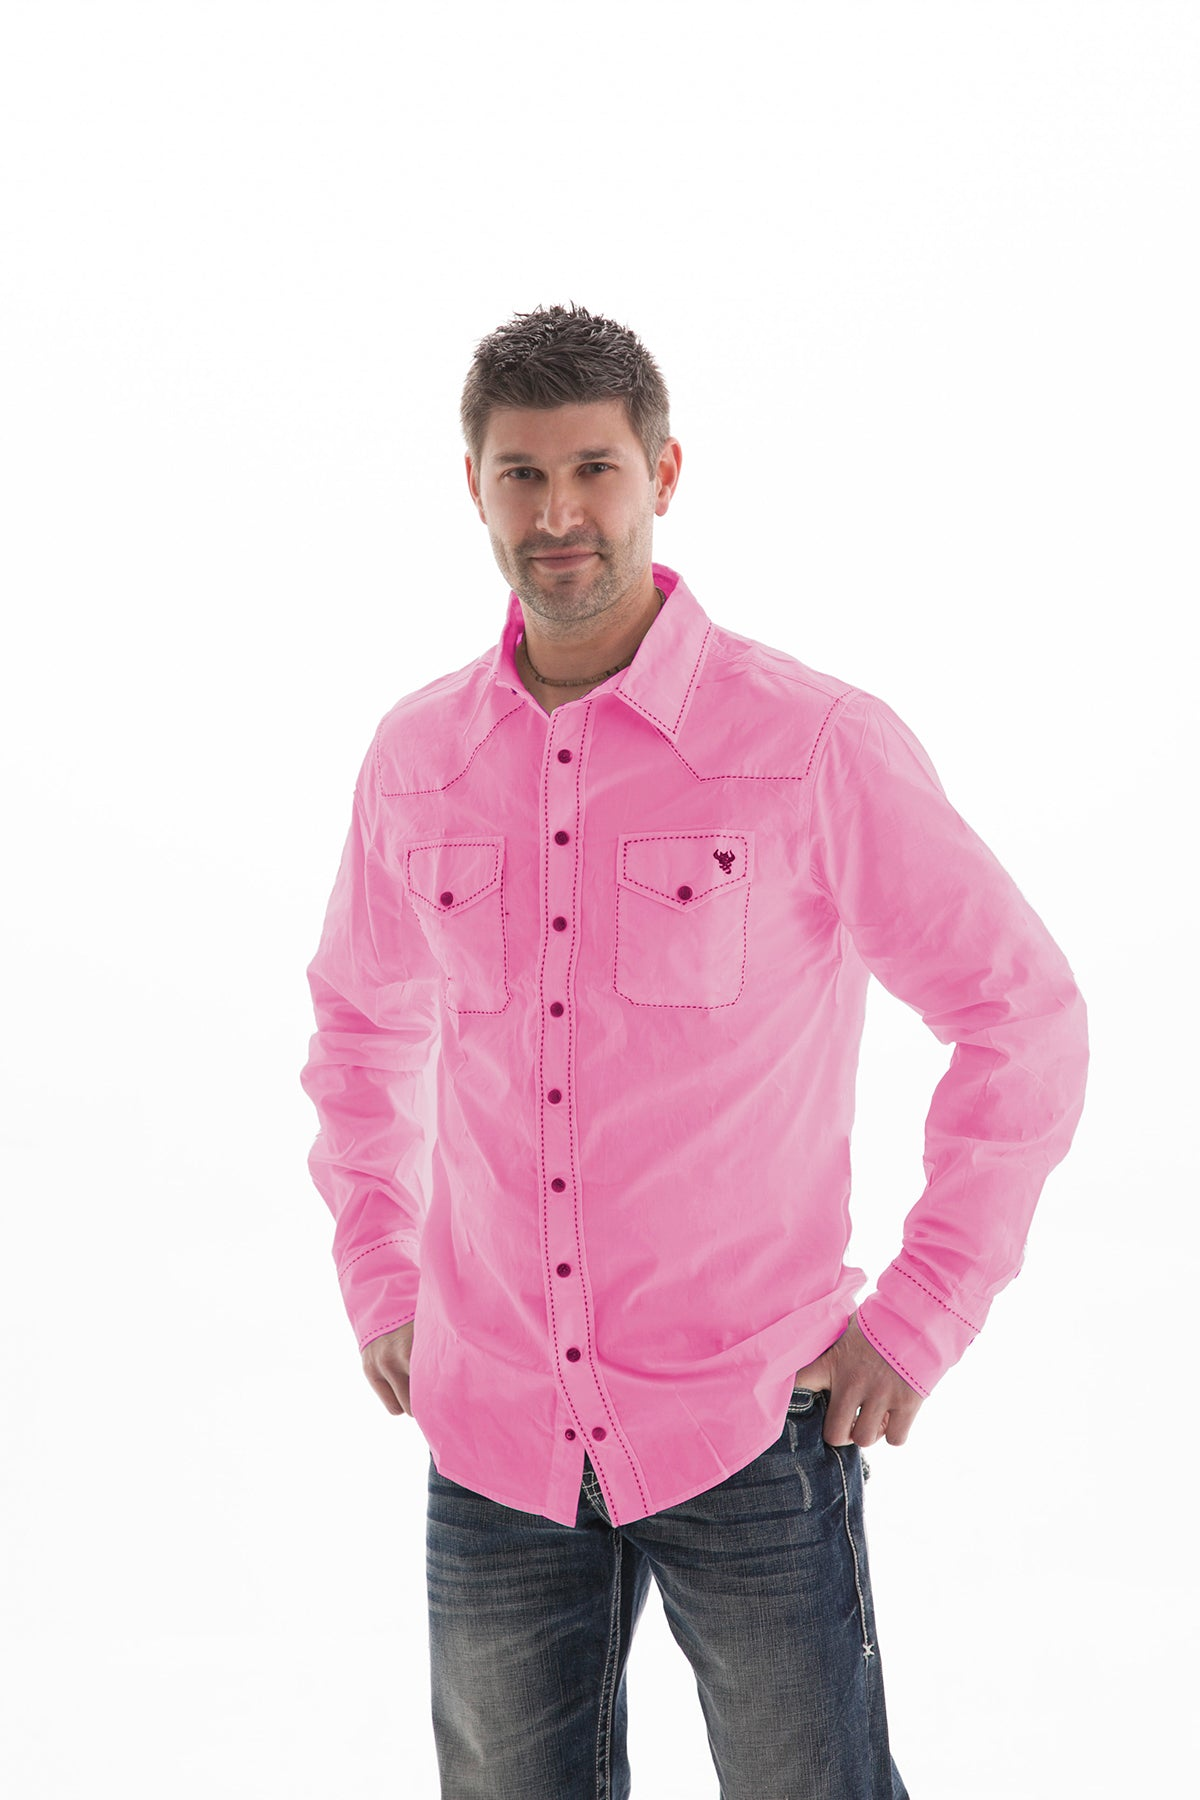 B tuff mens pink cotton blend western shirt button up l s for Baby pink shirt for man